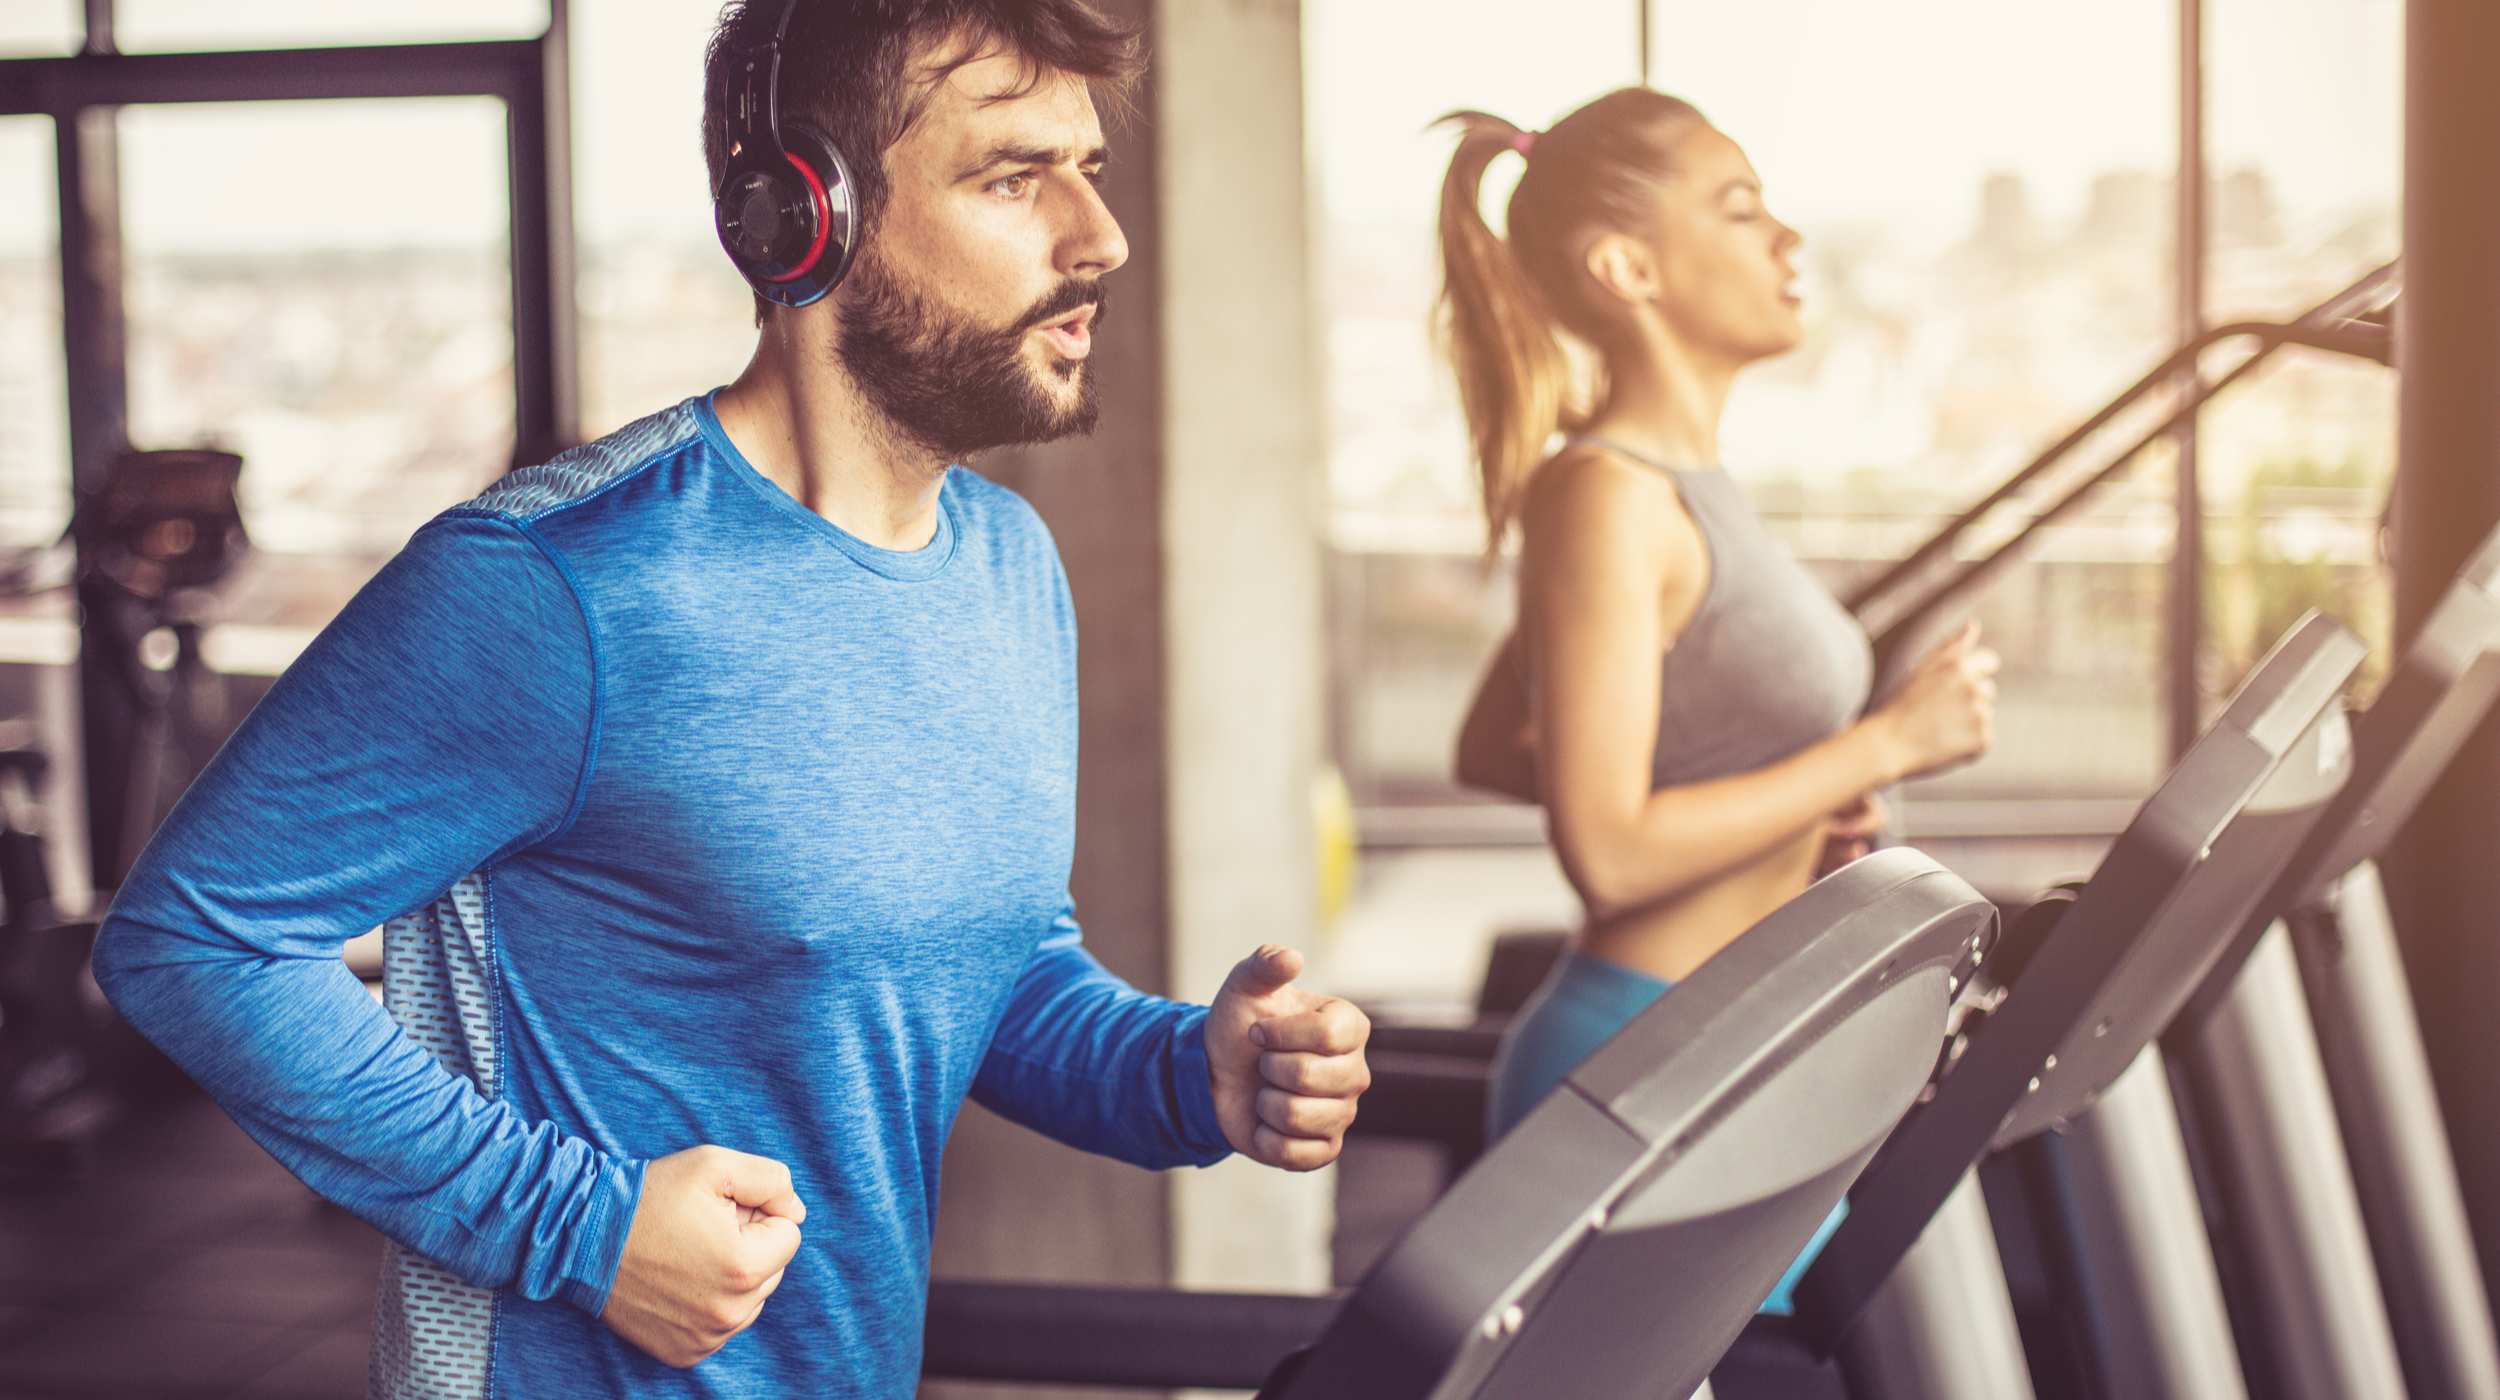 Is Cardio the Best Form of Exercise for Weight Loss?